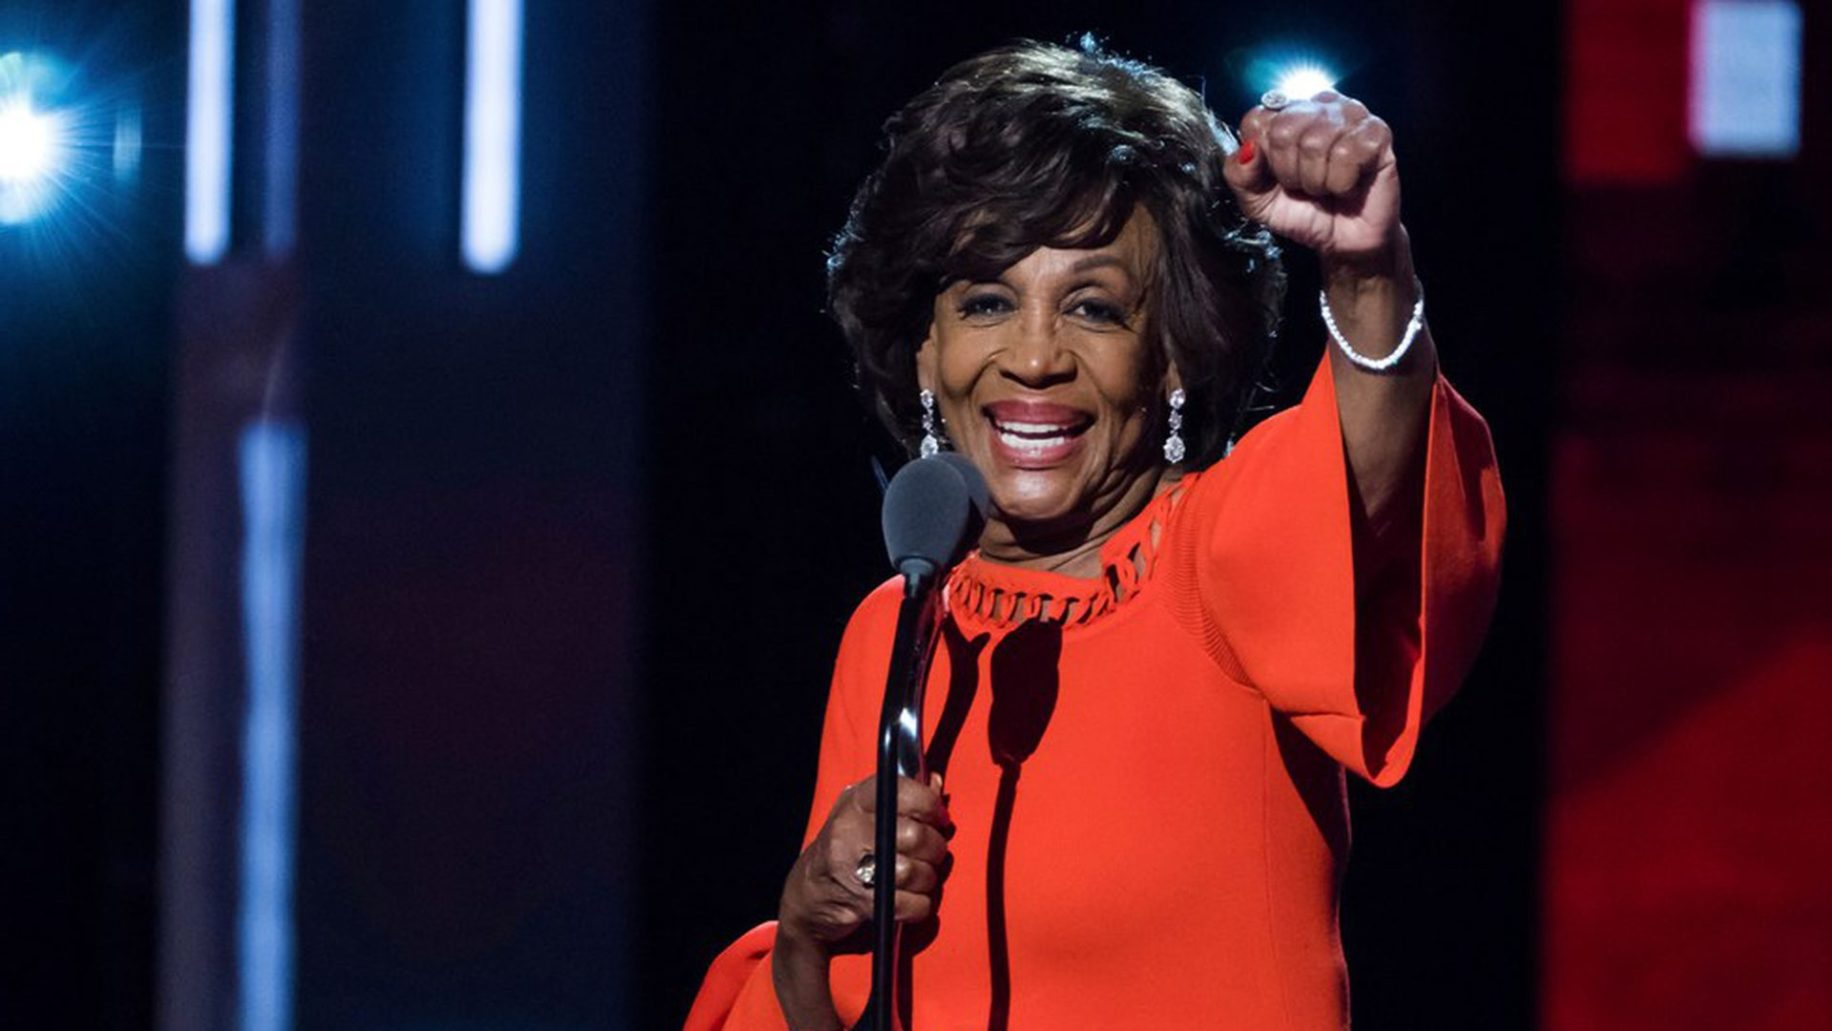 Congresswoman Maxine Waters in an interview for the Bros4America podcast Alex Mohajer